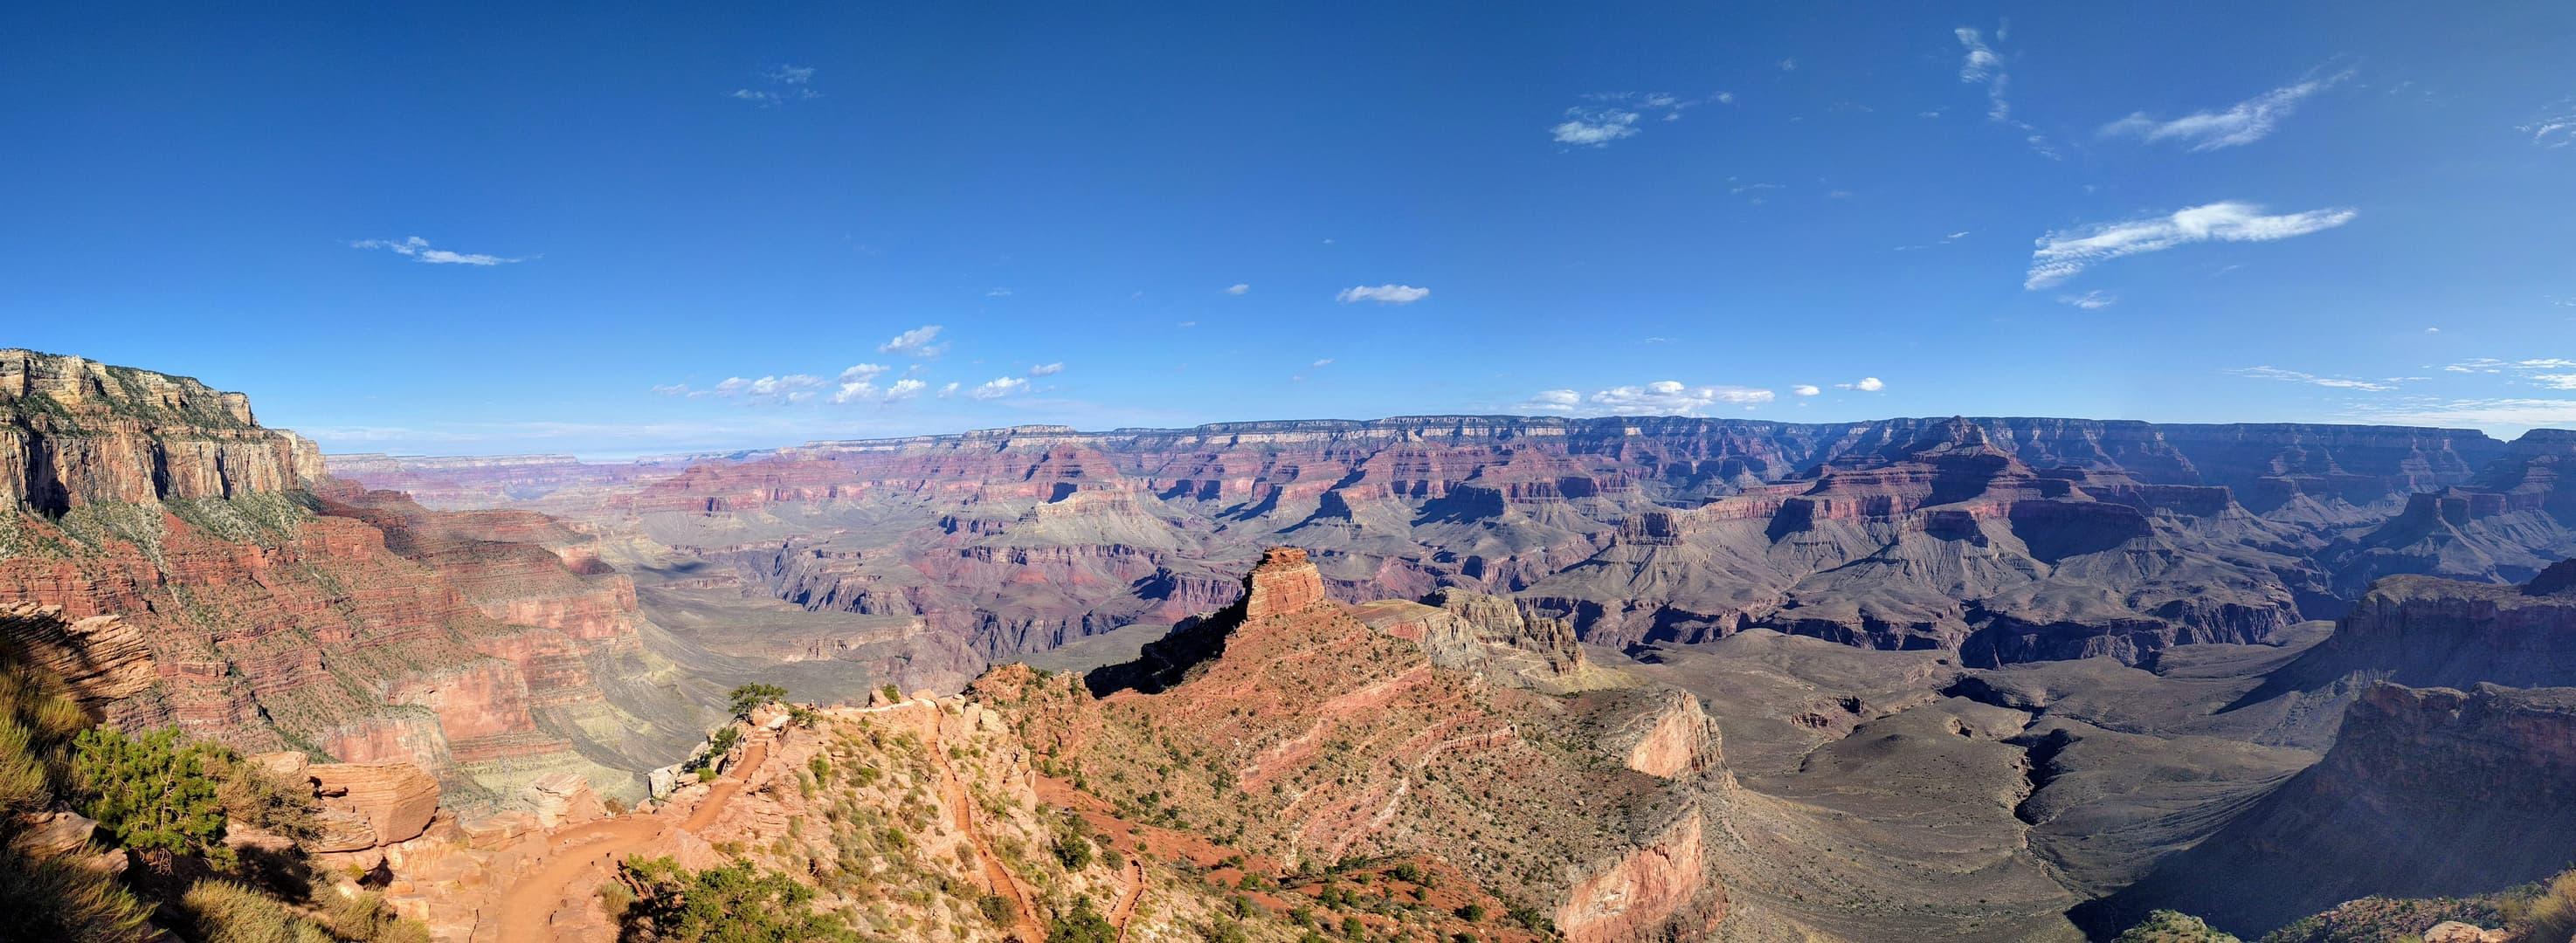 A mesa-like 'temple' near the end of a long ridge descending towards the floor of the Grand Canyon from the South Rim. Parts of the trail down to the floor of the Canyon can be seen in the foreground.